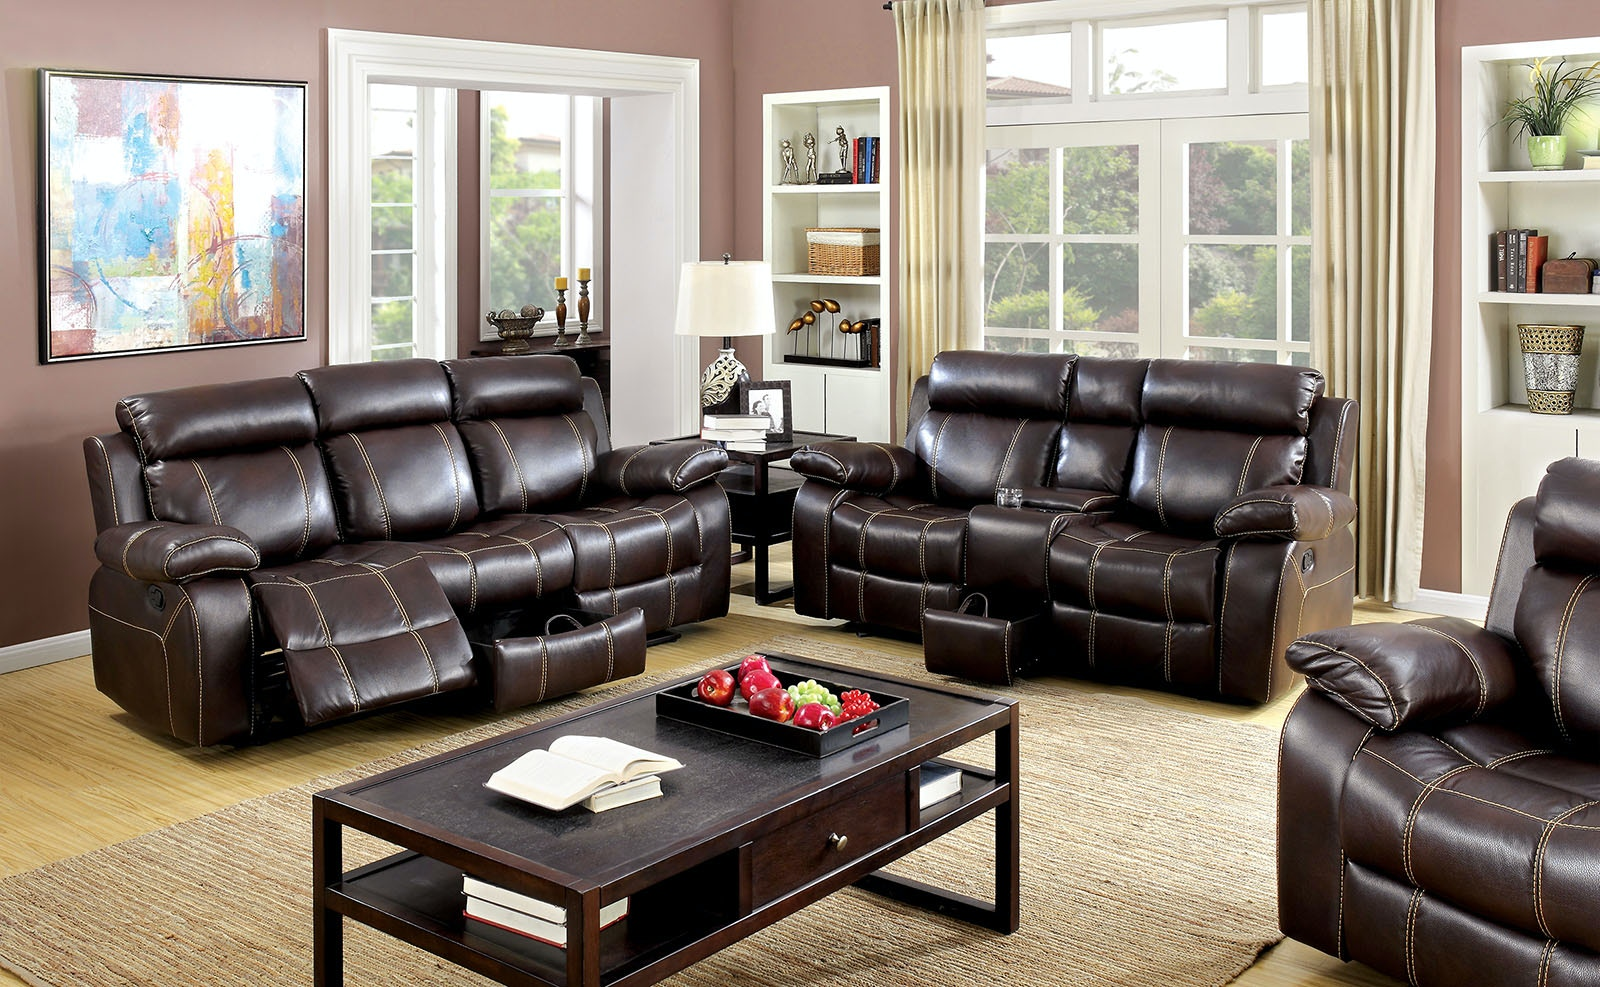 Furniture Of America Living Room Sofa W/ Storage Drawer CM6788 SF At The  Furniture Mall